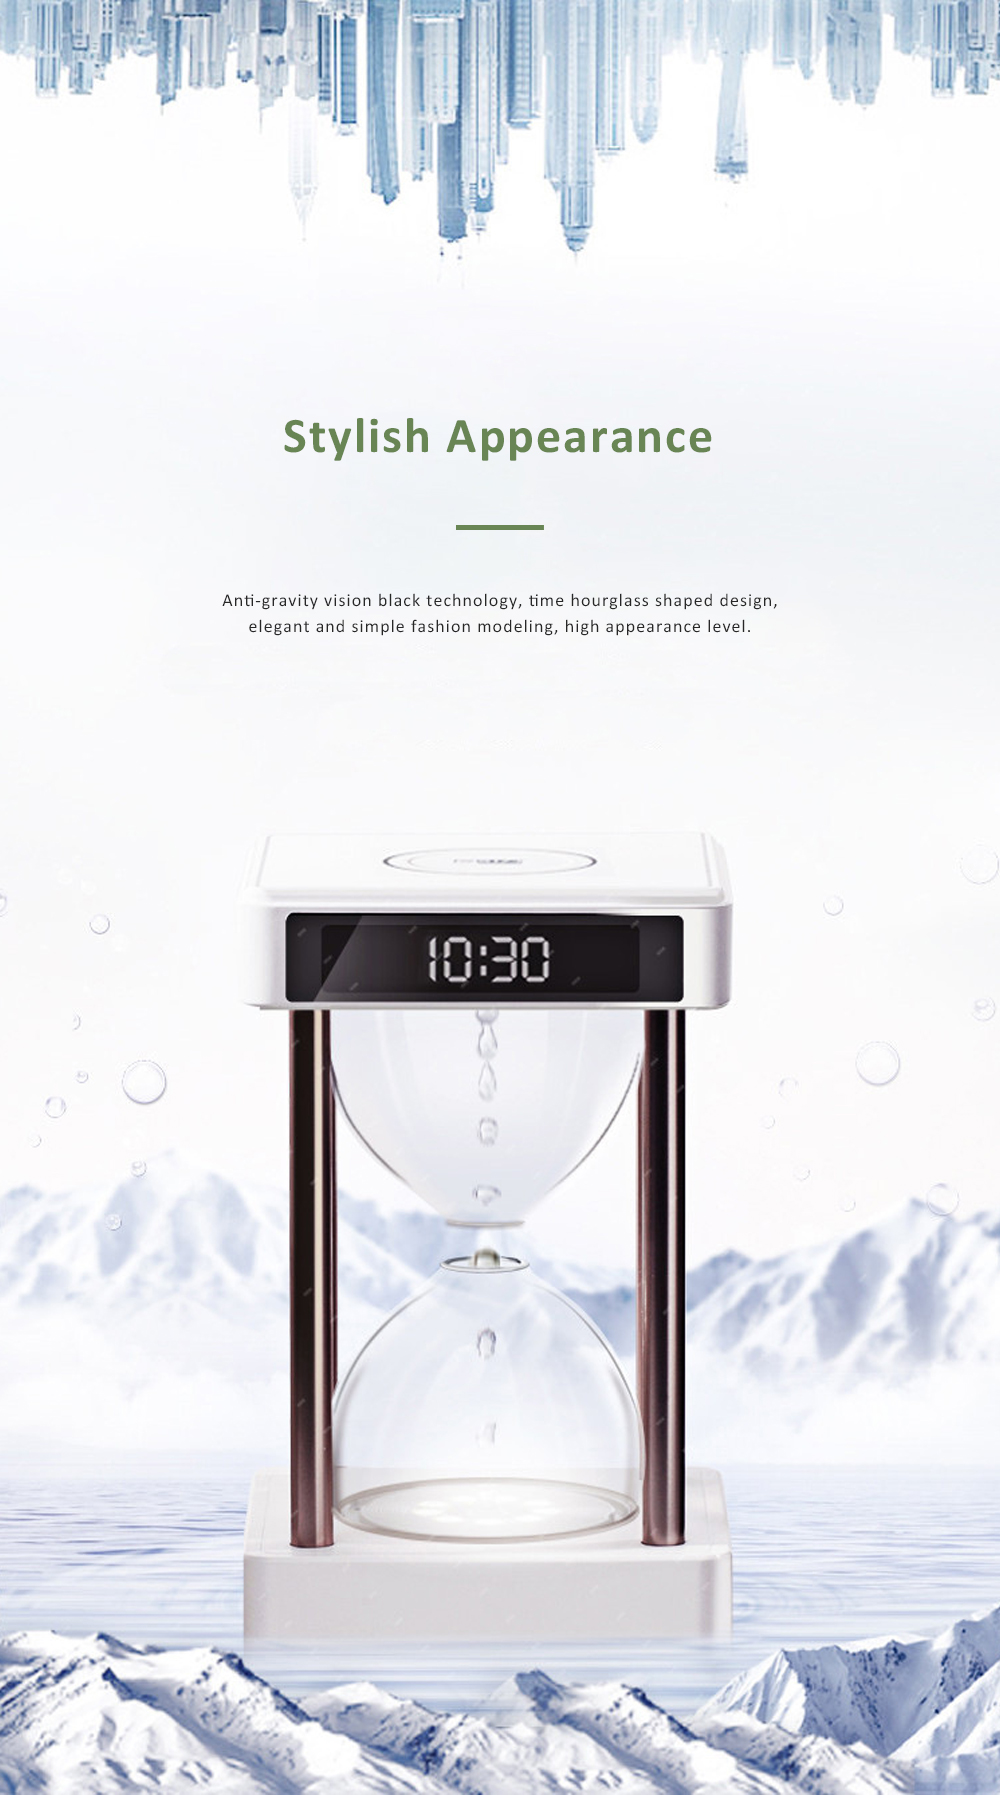 Tinkleo Air Purifier Anti-Gravity Time Hourglass with Water Drops Back Flow Desktop Humidification Deodorization Decoration Gift 3